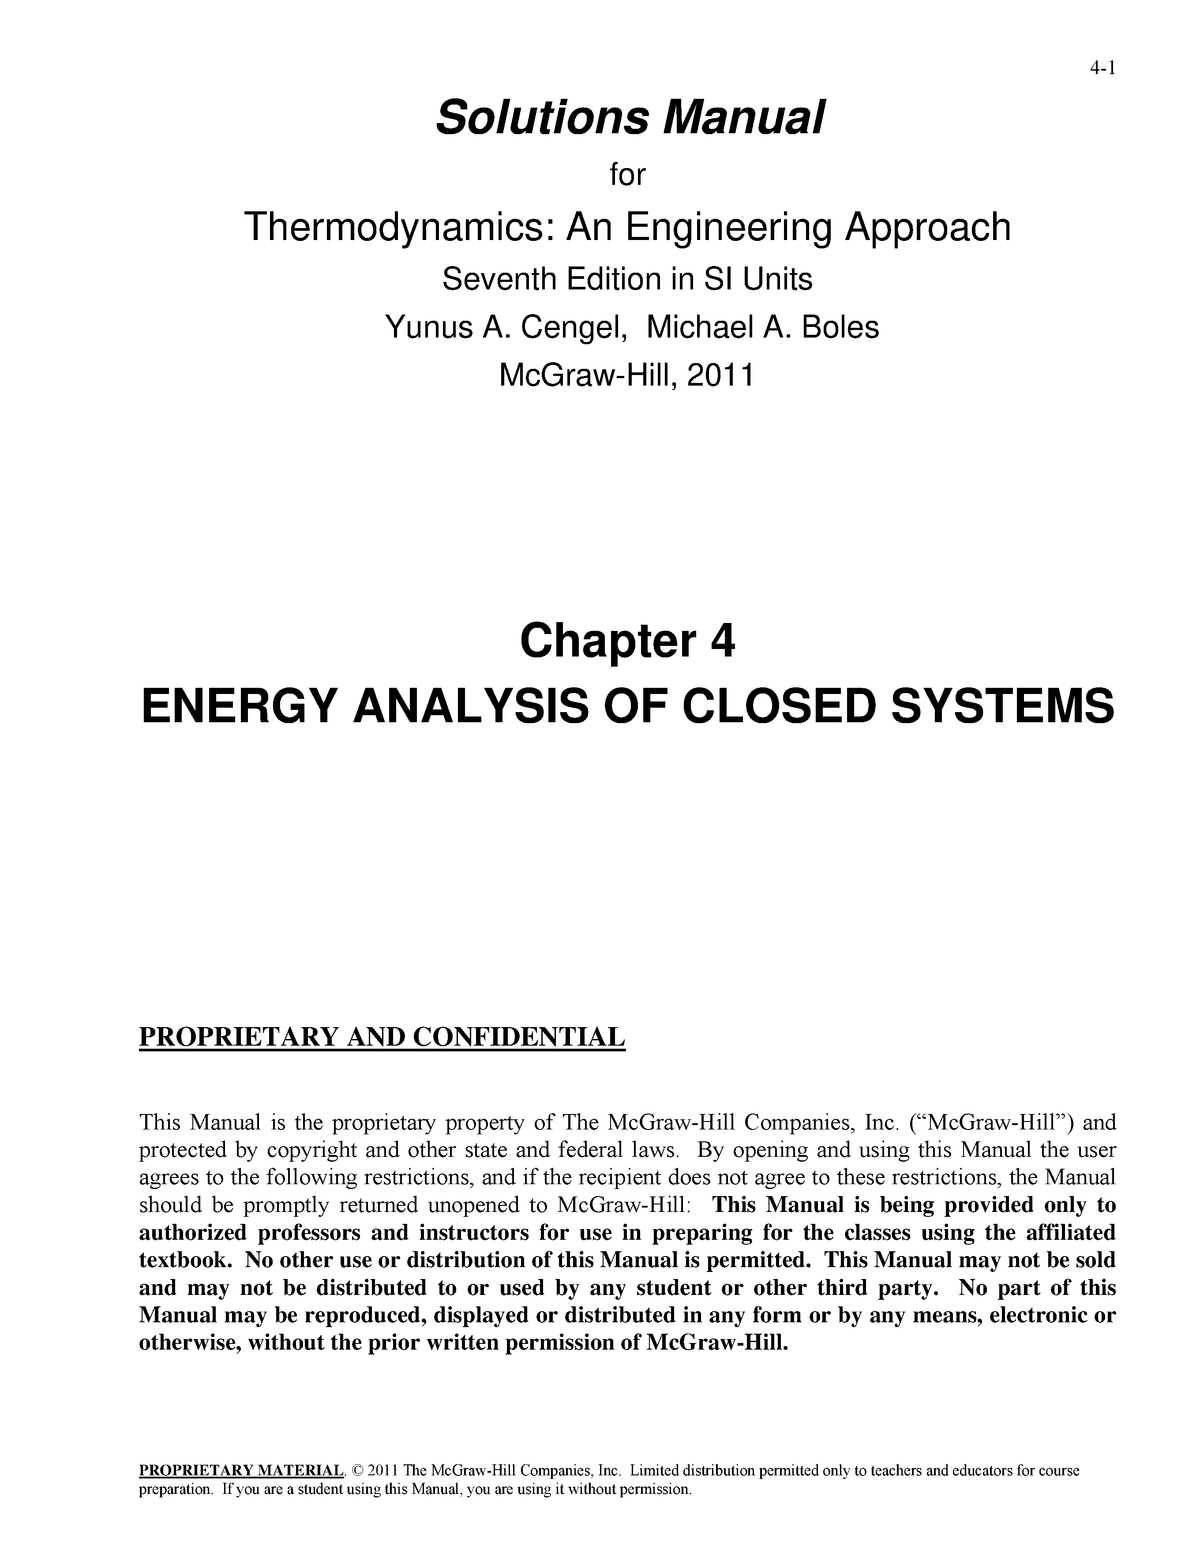 thermodynamics an engineering approach 9th edition tables